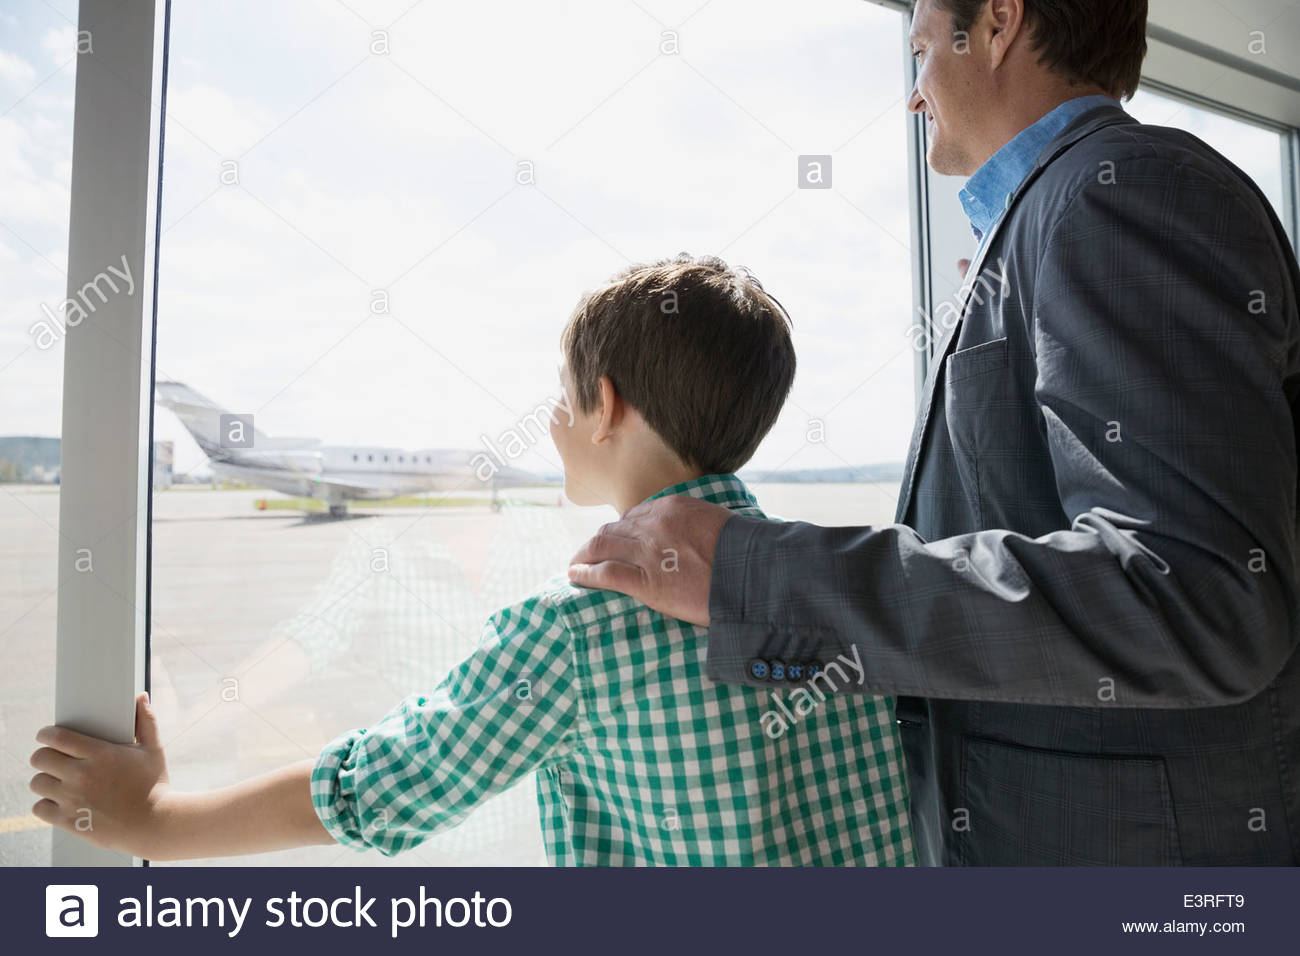 Father and son at sunny airport window - Stock Image